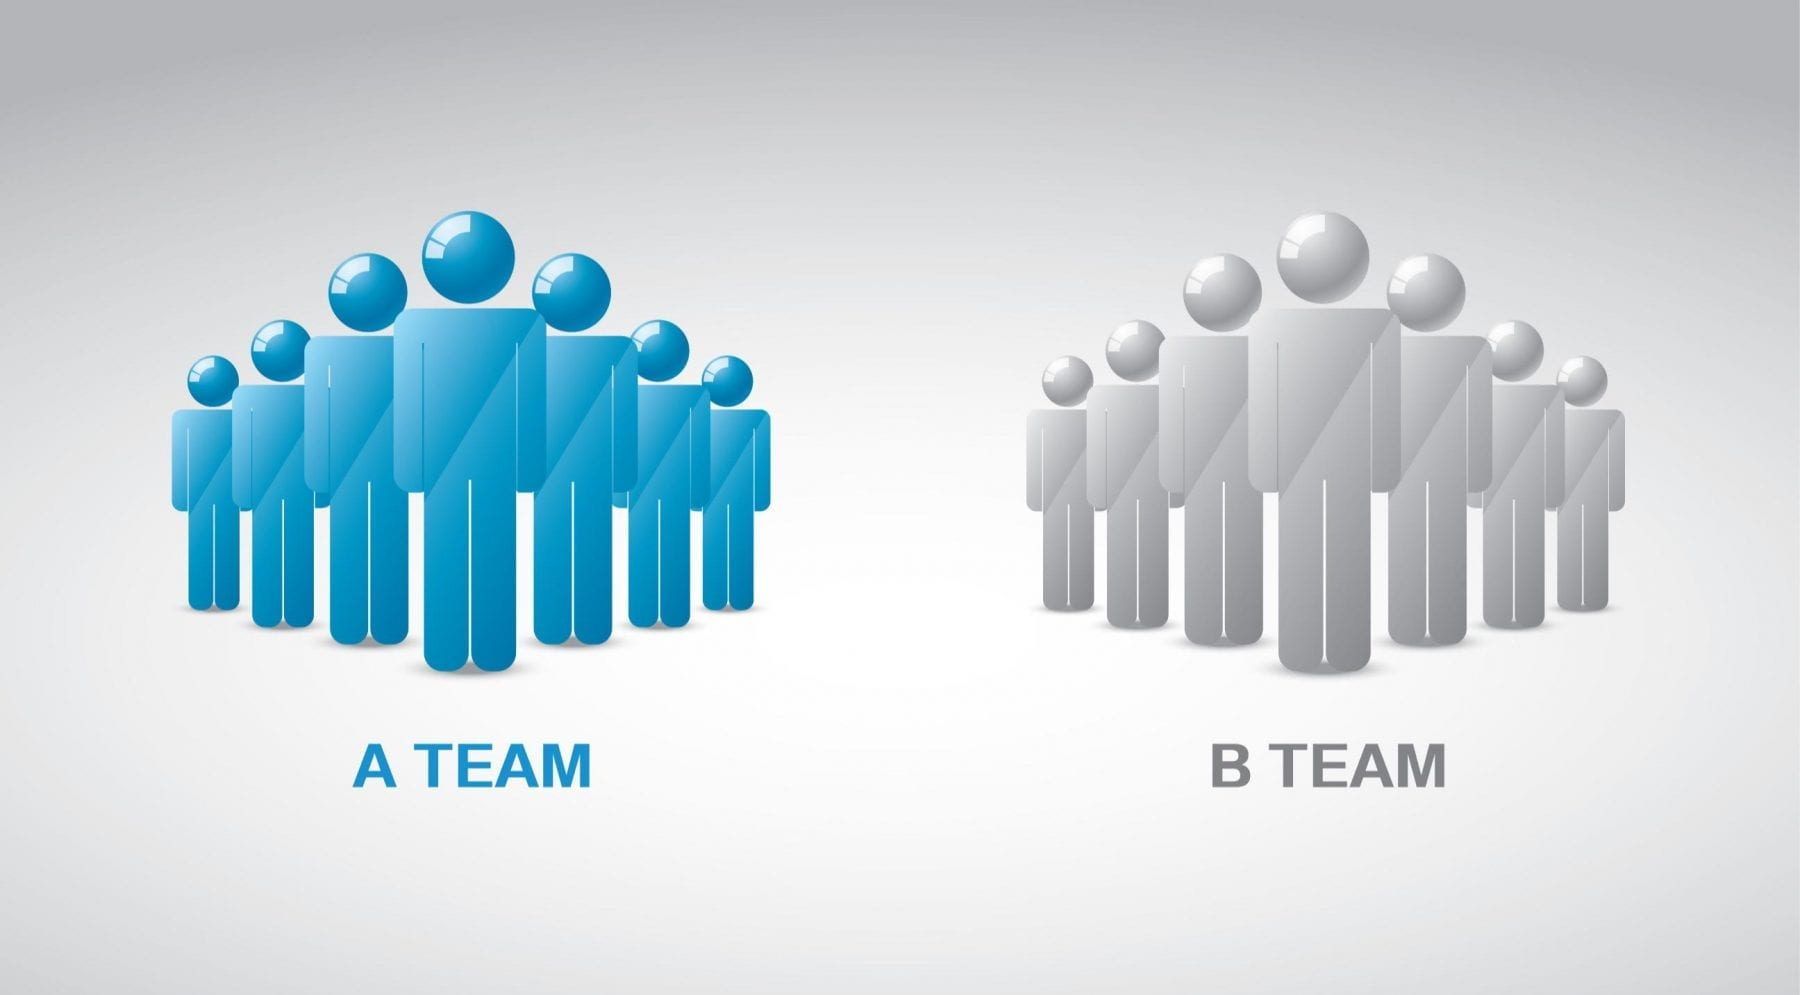 Two groups - team a and team b